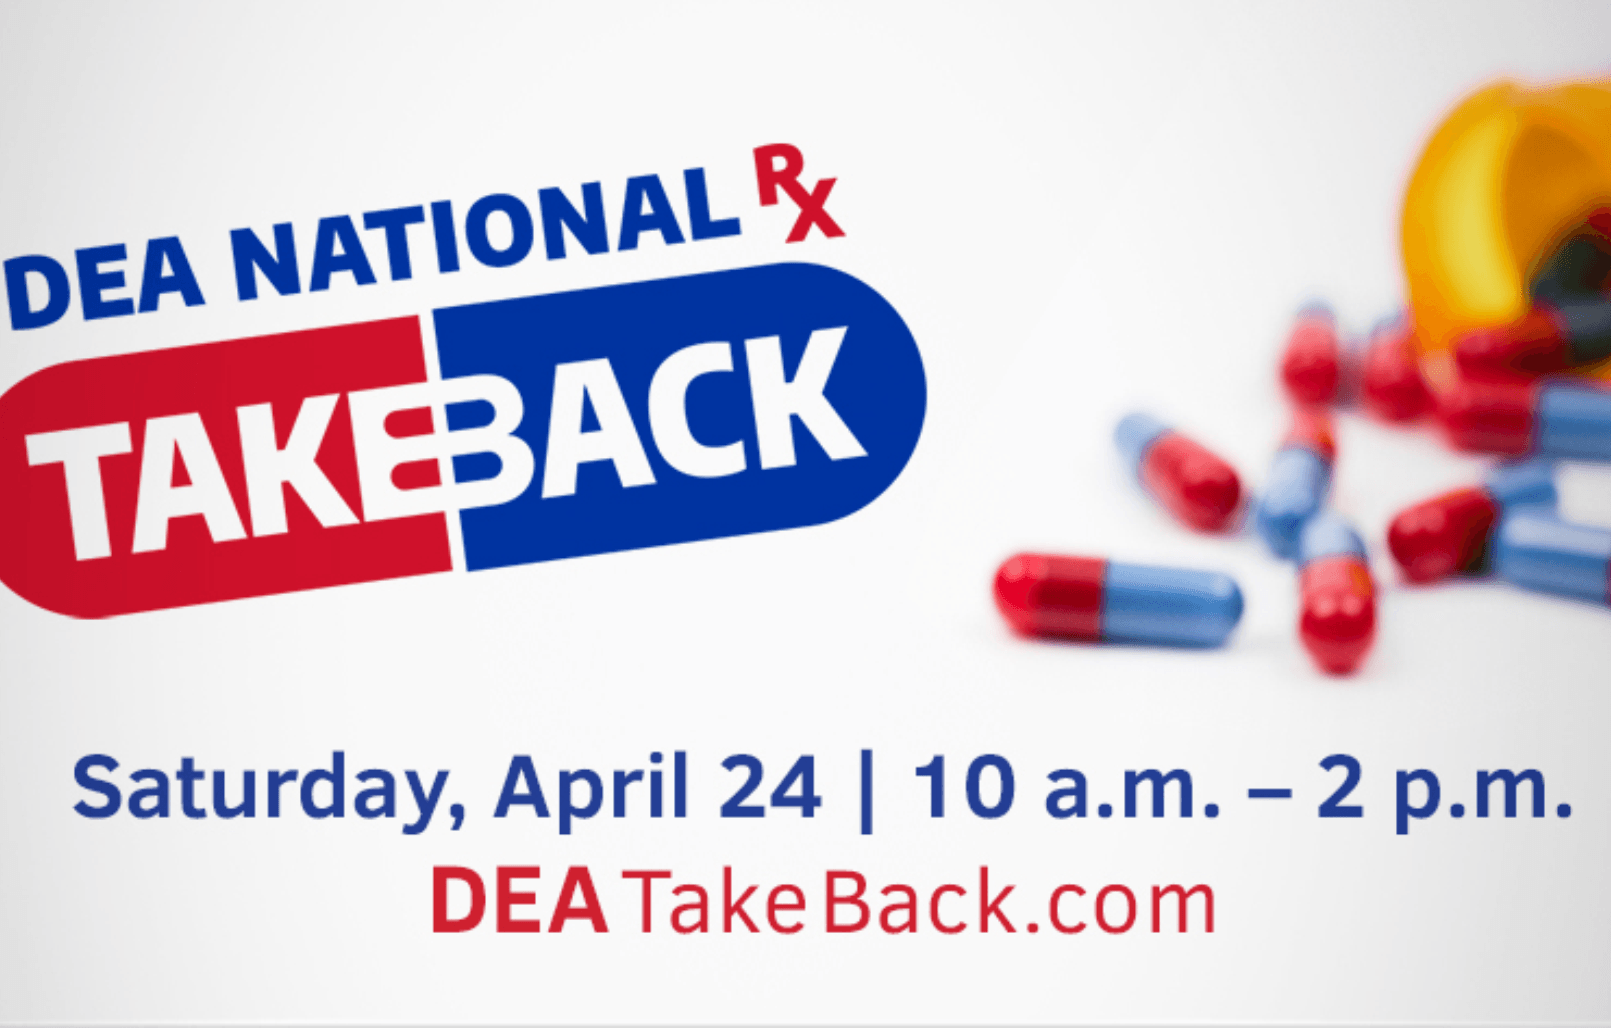 Red and blue text: DEA National RX Take Back Day on Saturday, April 24 10-2, pills in background